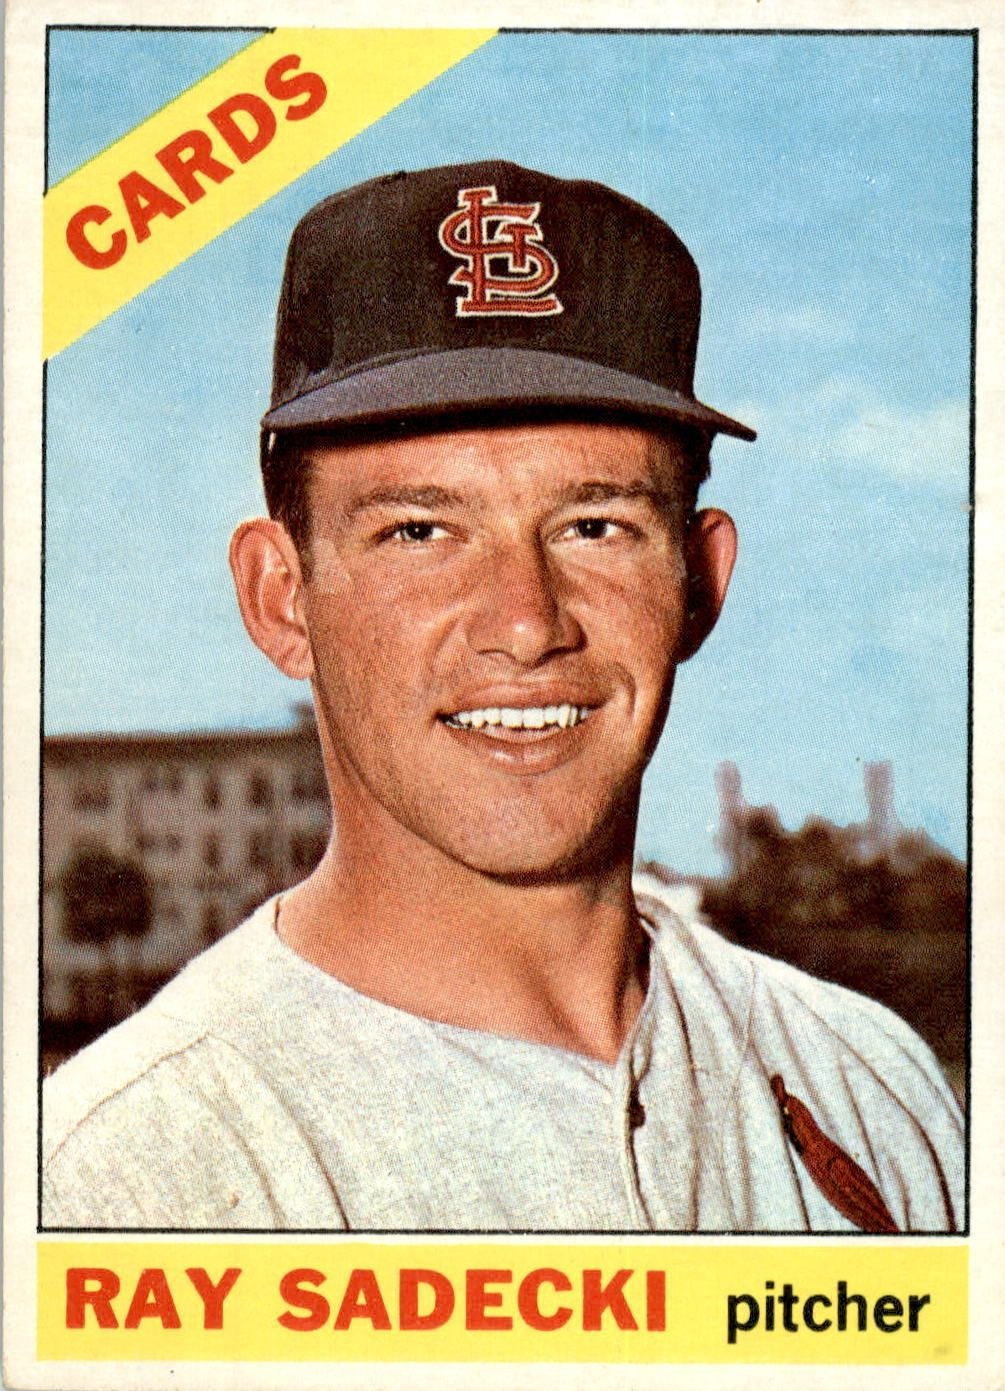 As a 19 year old ray sadecki won 7 games for the cardinals